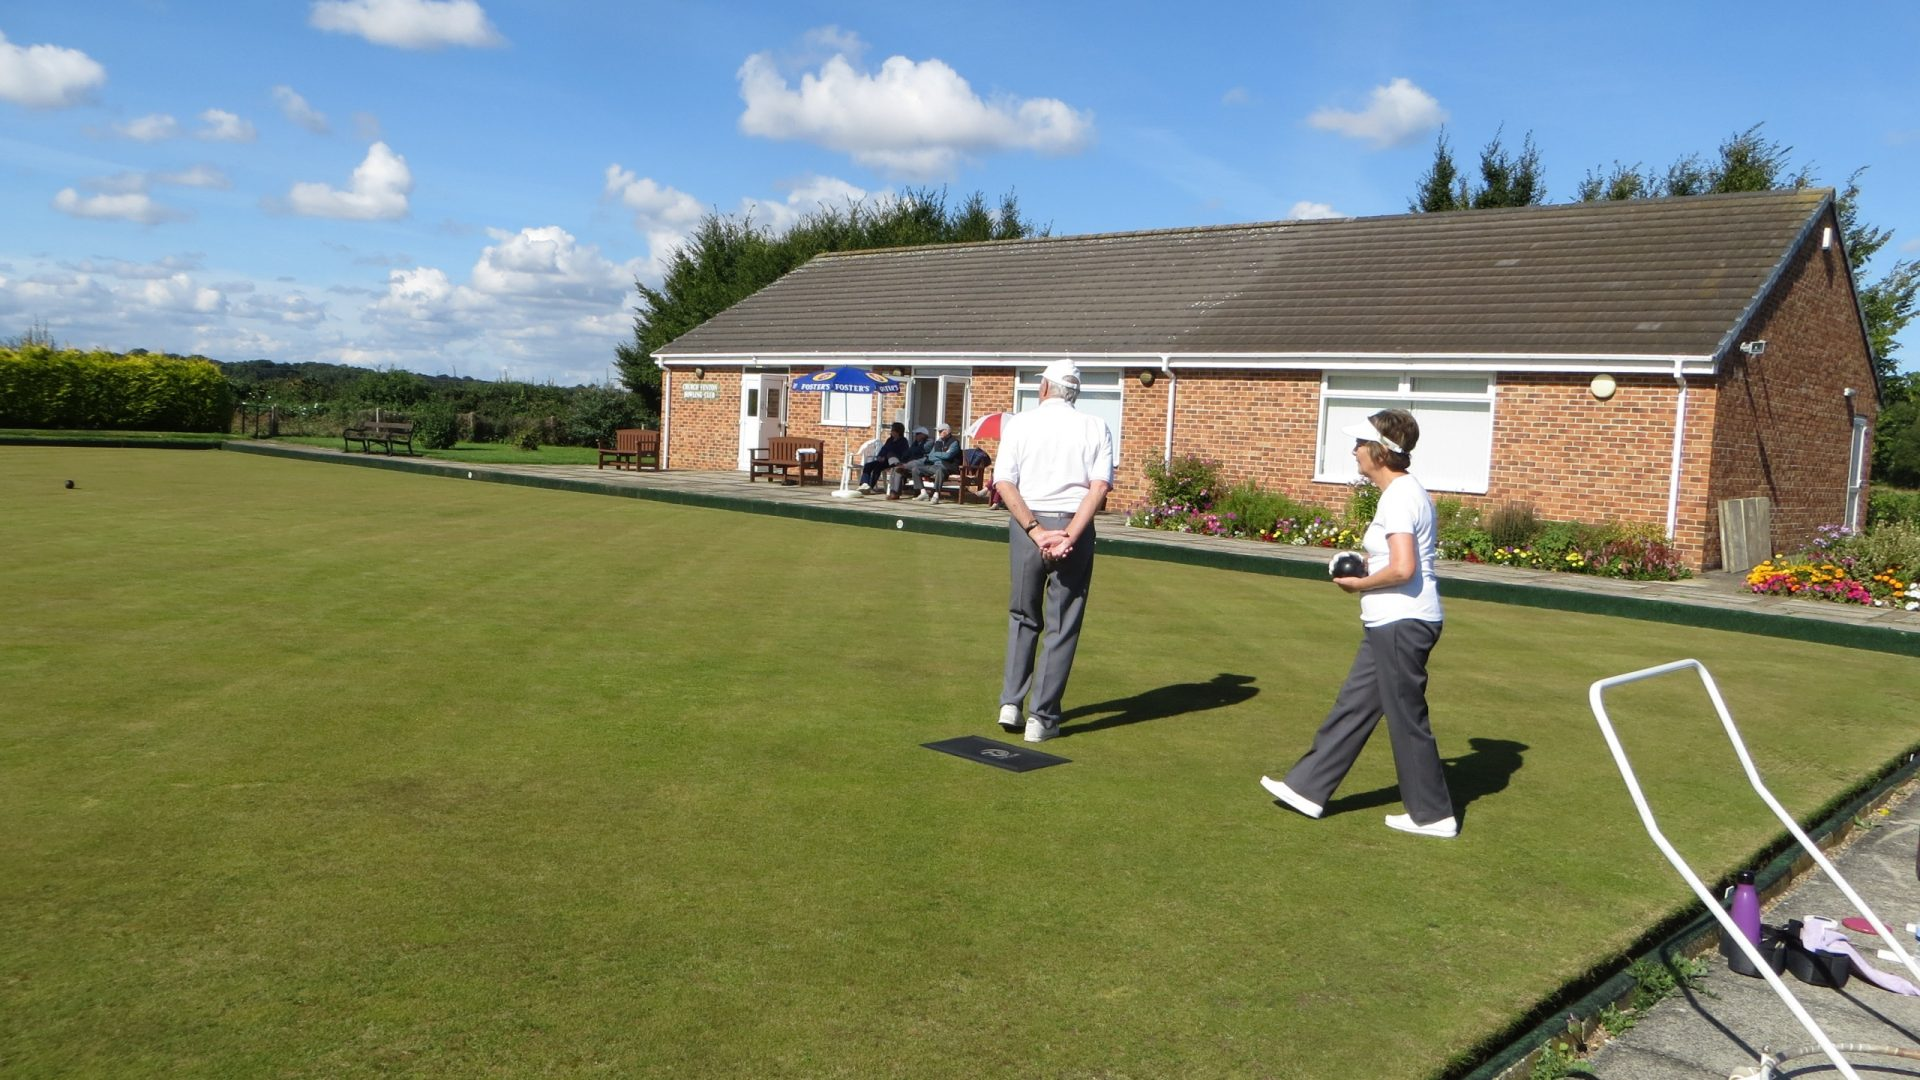 Church Fenton Bowling Club